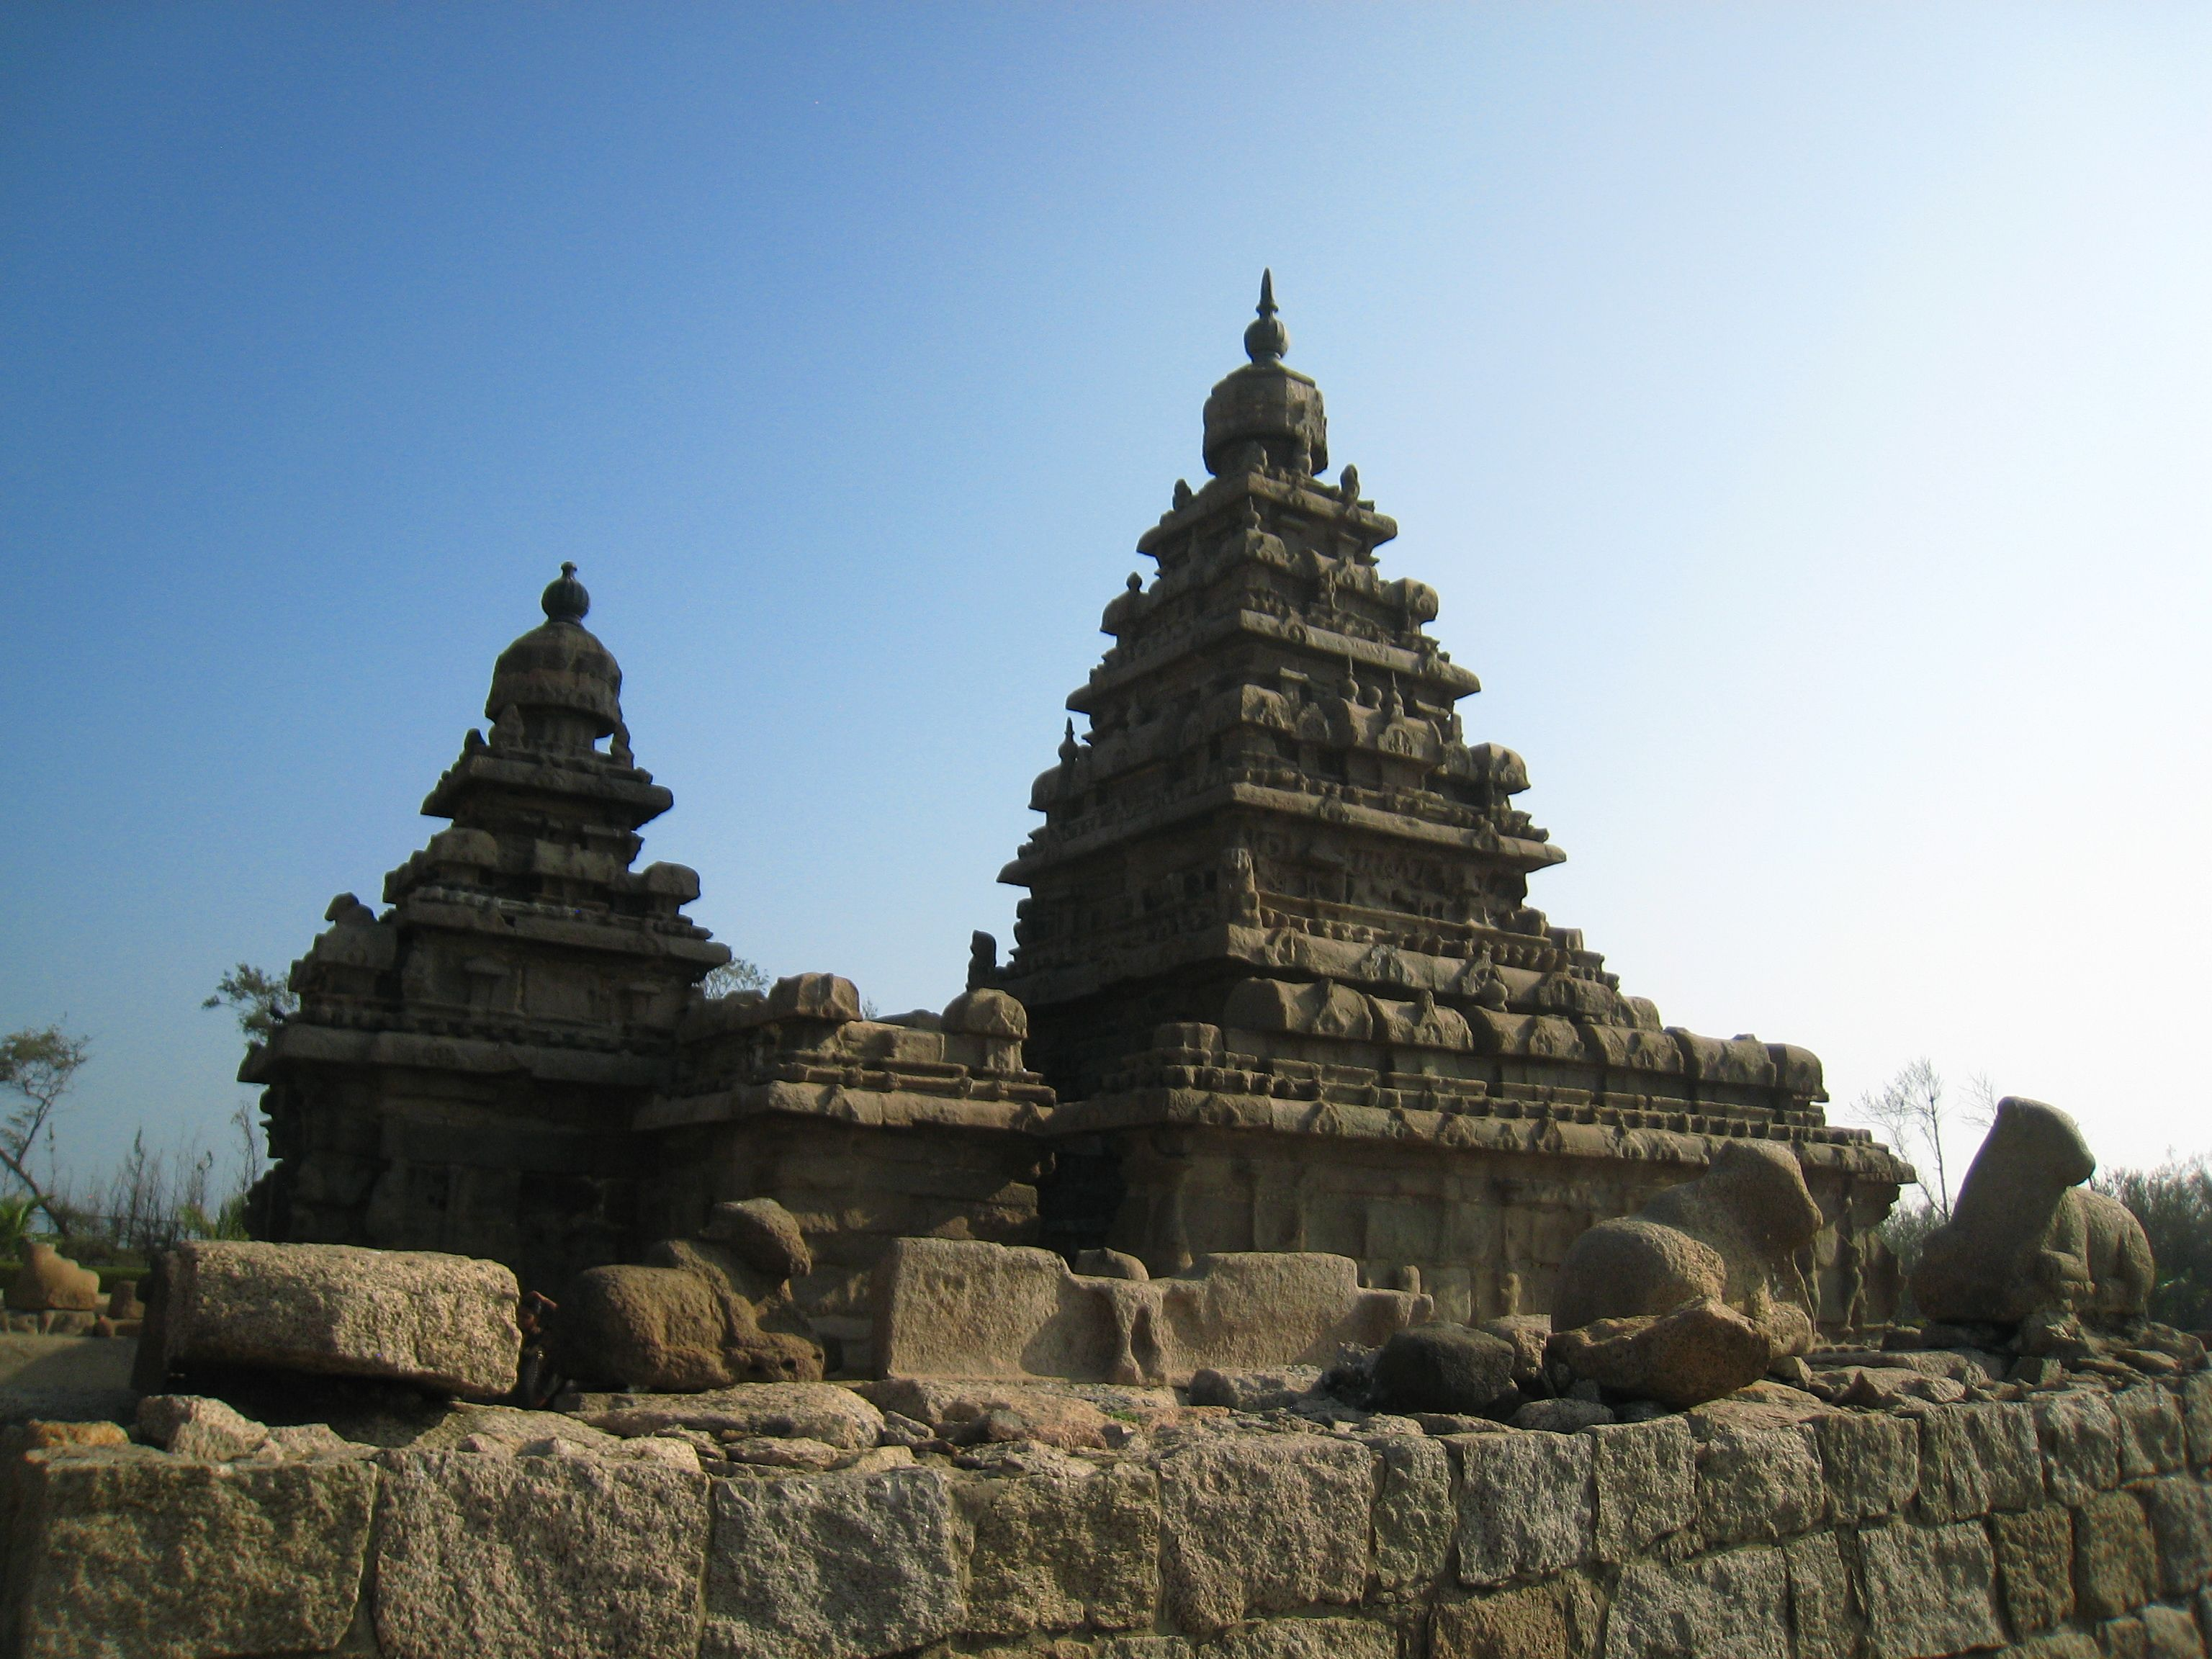 Centuries back this meant something - today it is a piece of art. Shore Temples